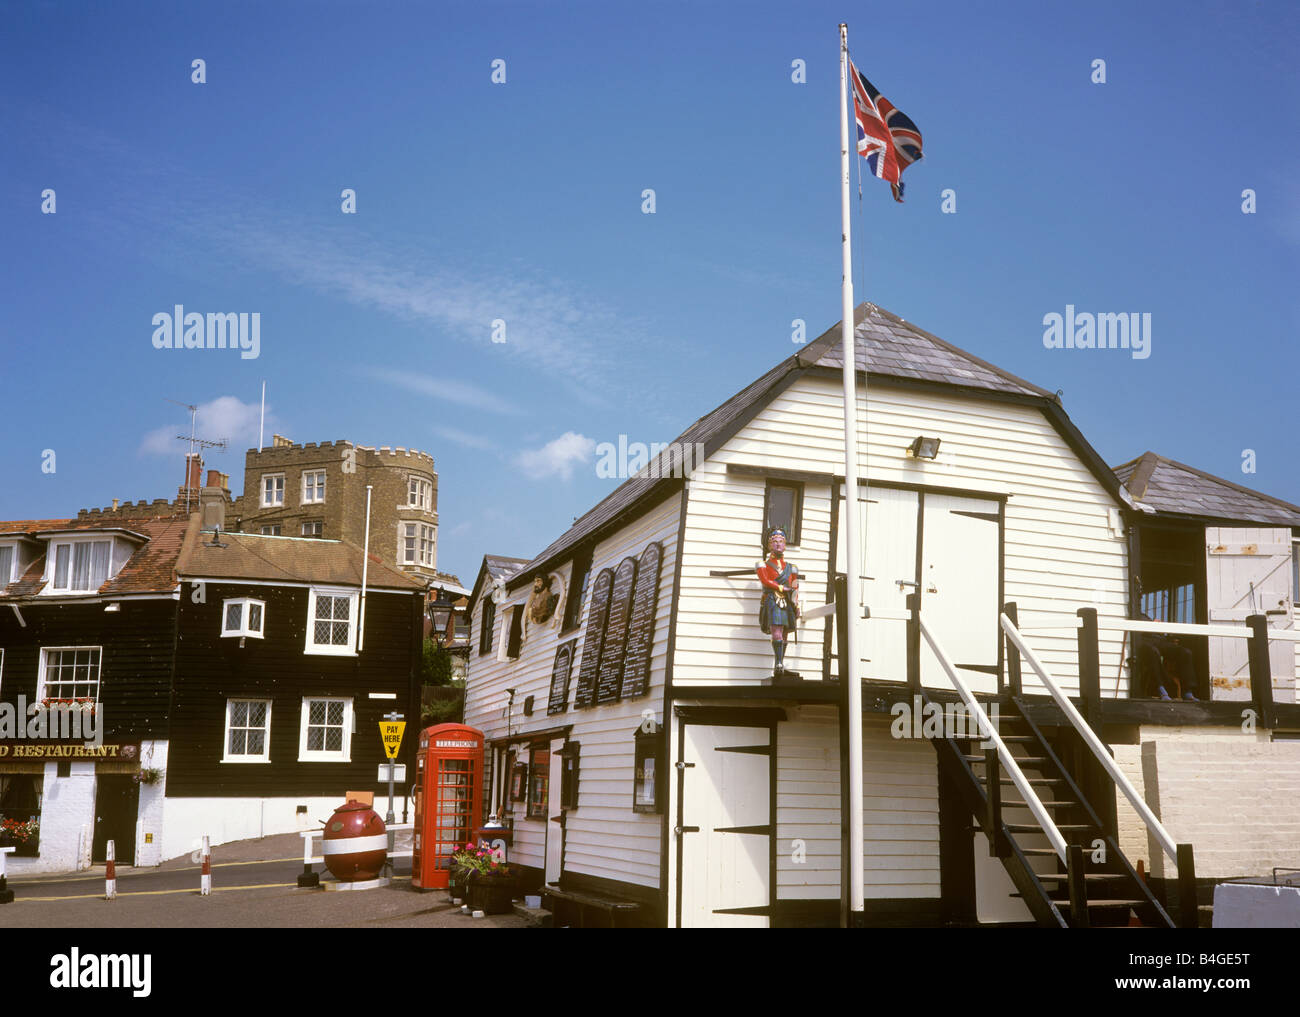 UK England Kent Broadstairs Lifeboat station and Charles Dickens Bleak House - Stock Image